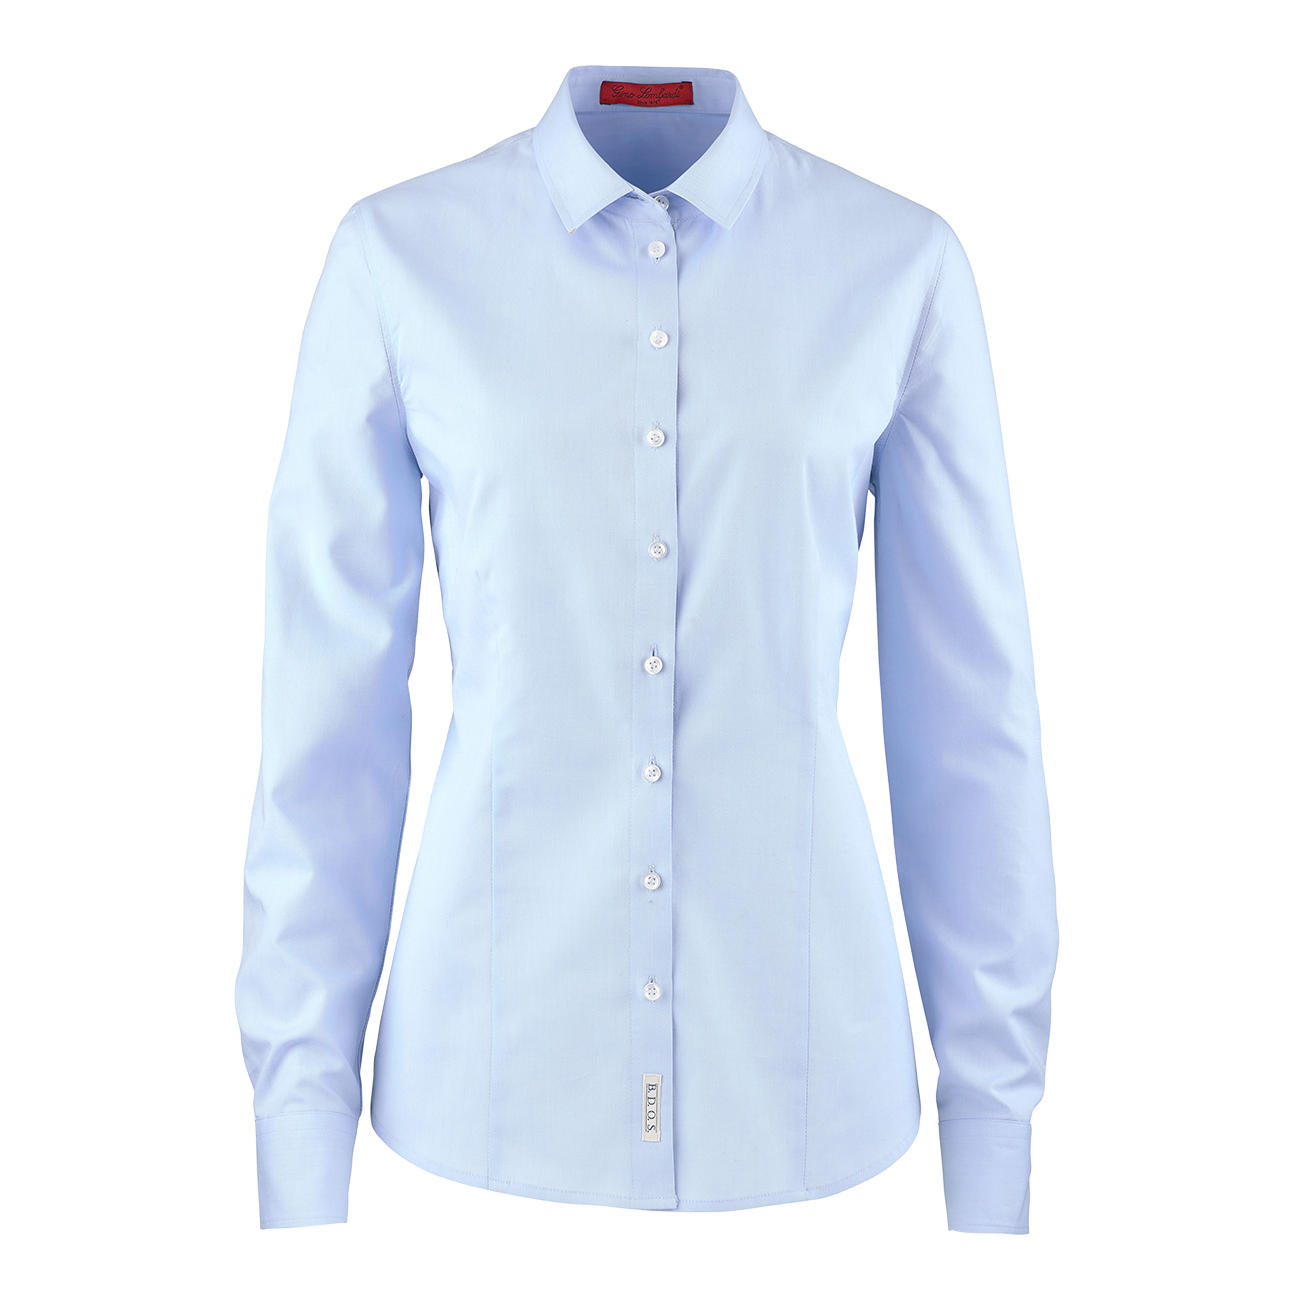 28b1181ed9d921 Fashion Classics Oxford-blouse